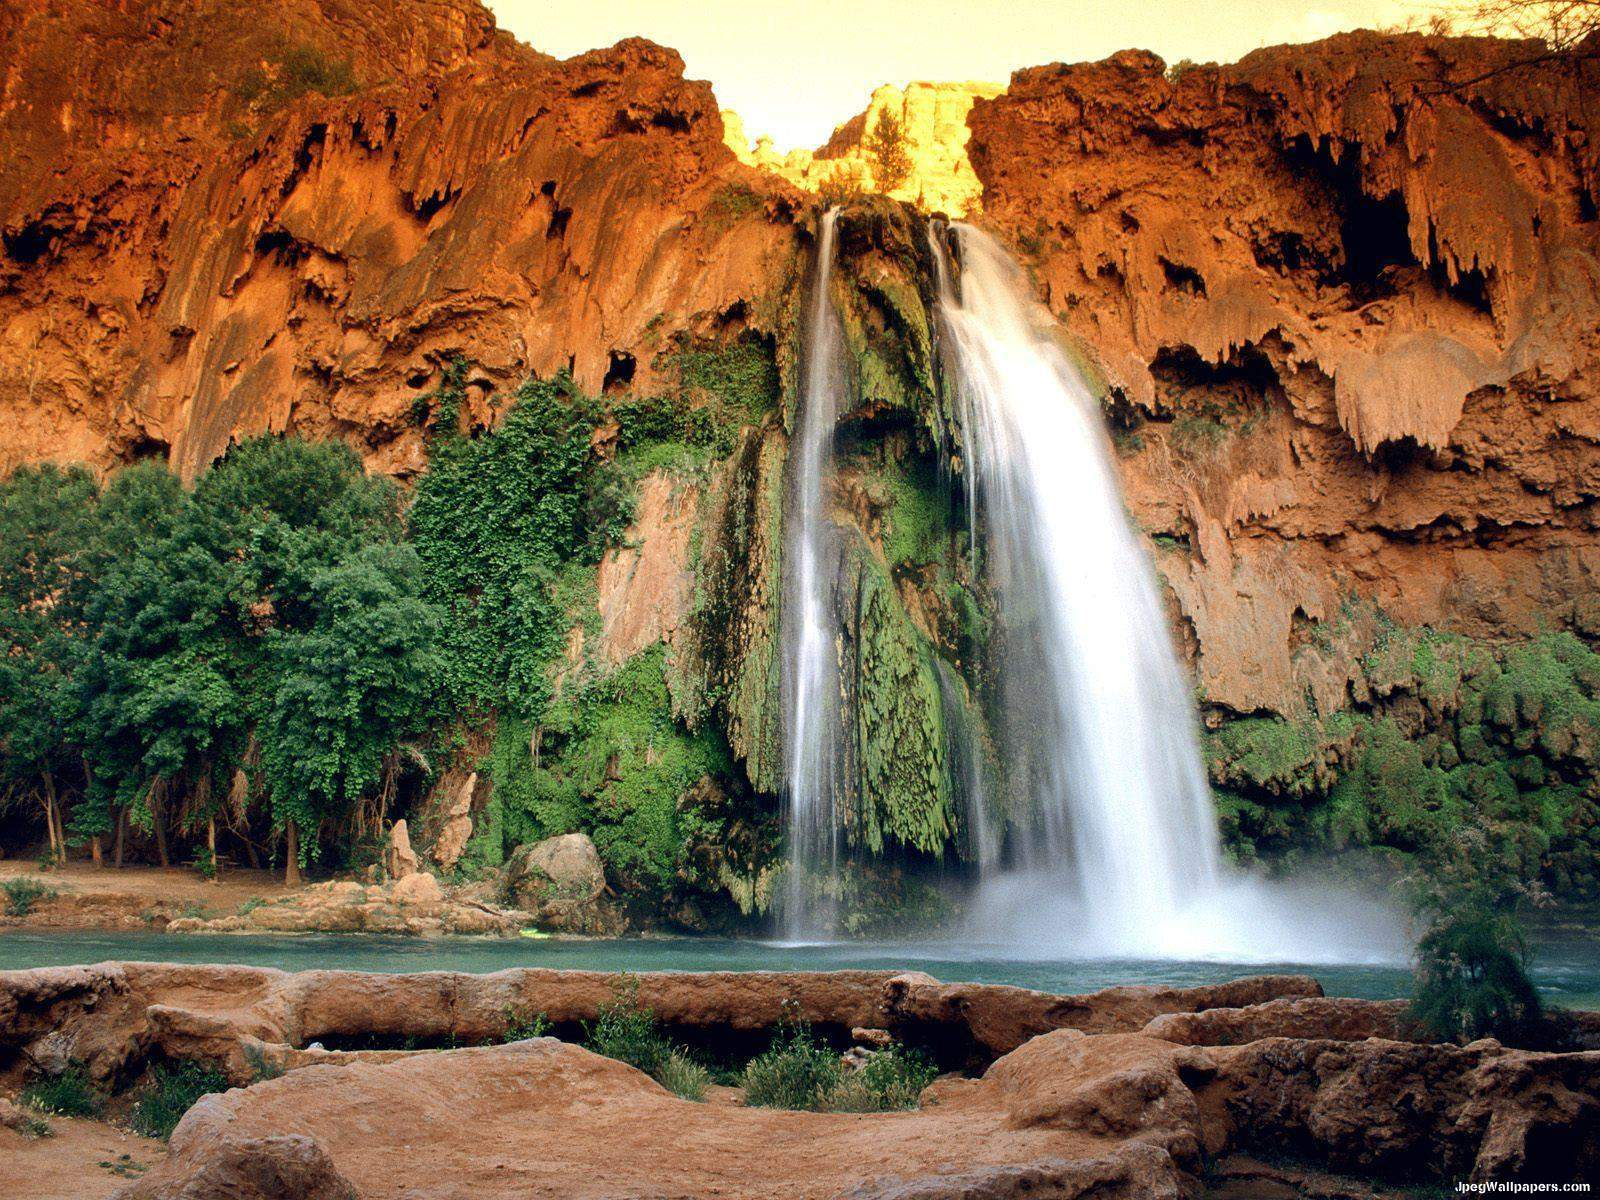 Download Landscape and Architectures wallpaper, 'Waterfall 2'.